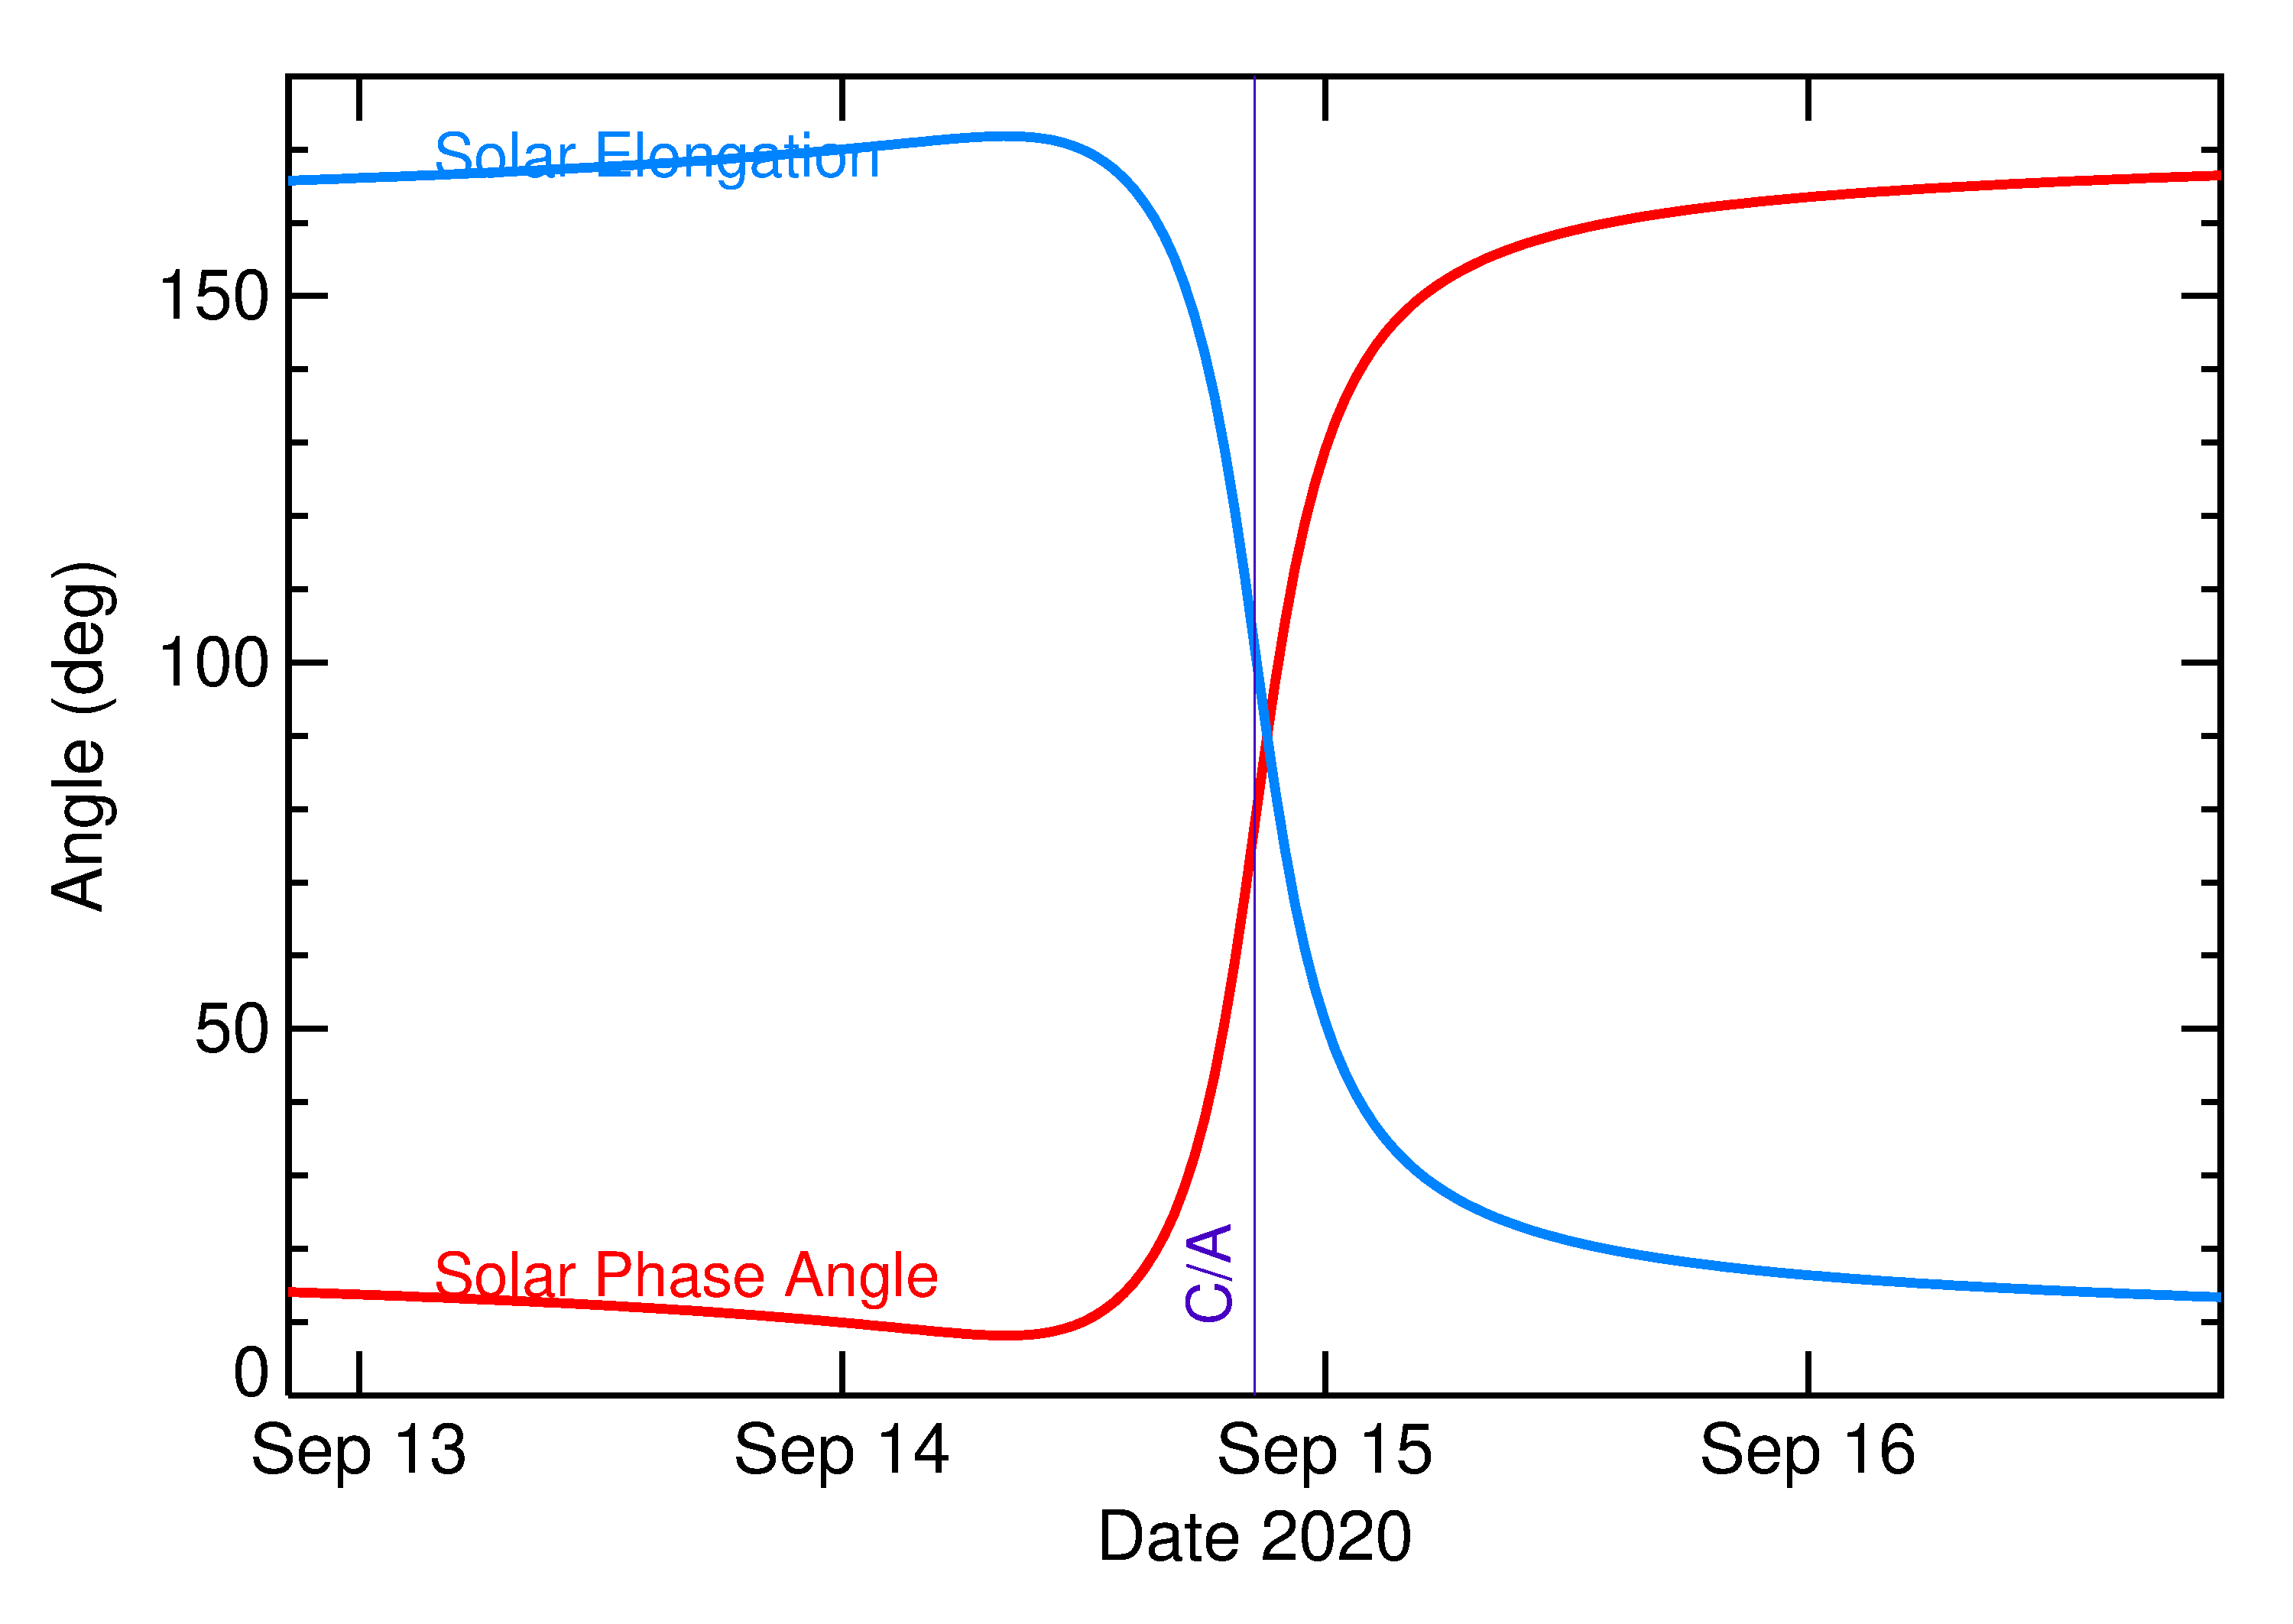 Solar Elongation and Solar Phase Angle of 2020 RD4 in the days around closest approach